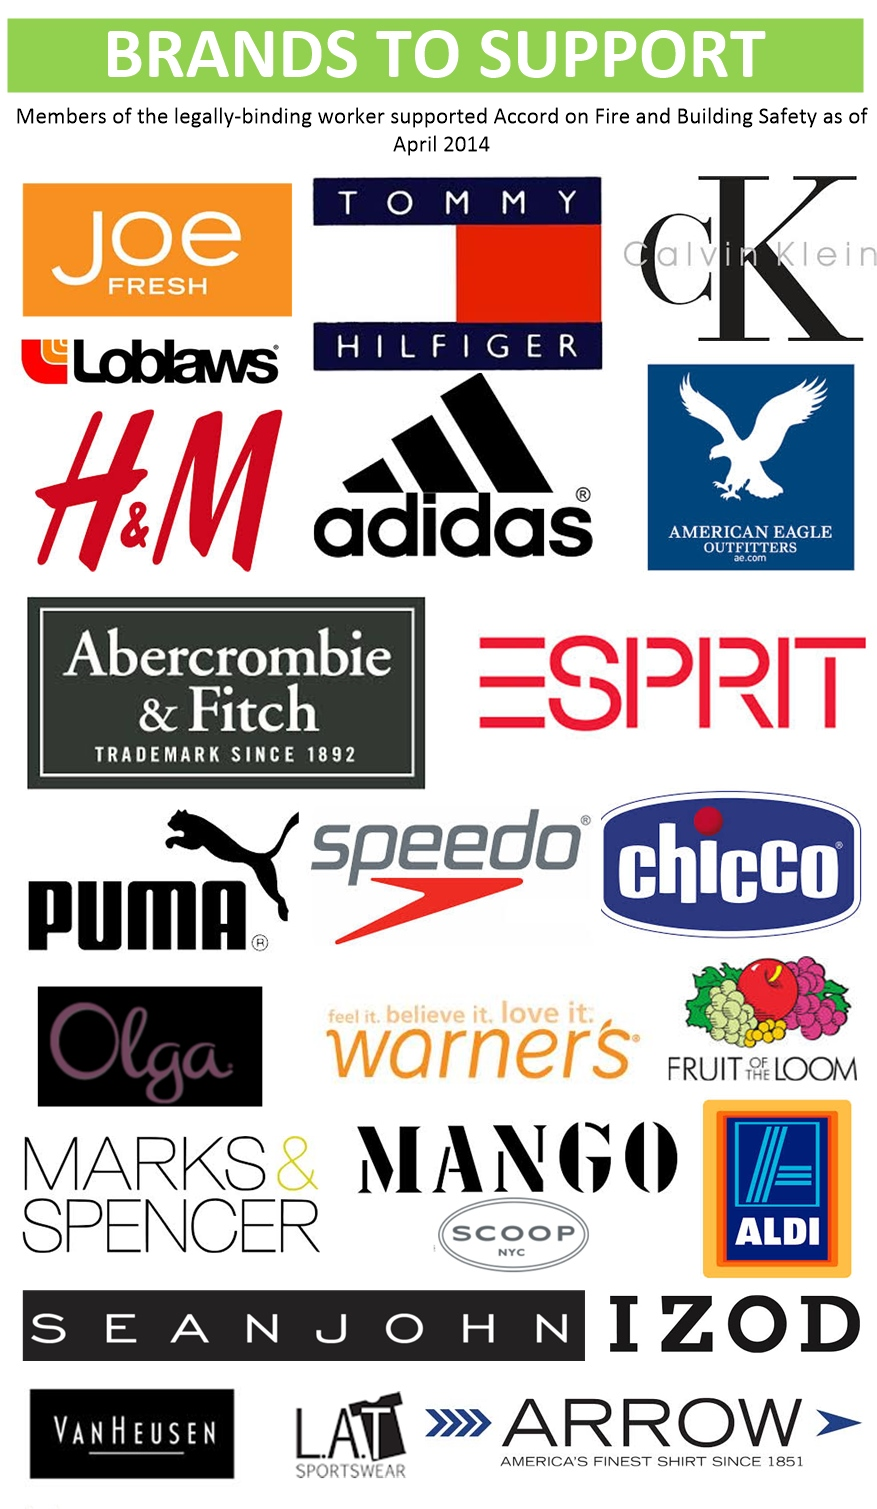 The 35 companies we have listed below are some of our favorite ethical alternatives to fast fashion companies. Each one has made it a central part of their mission to approach fashion in an ethical and transparent way that considers both people and the planet.